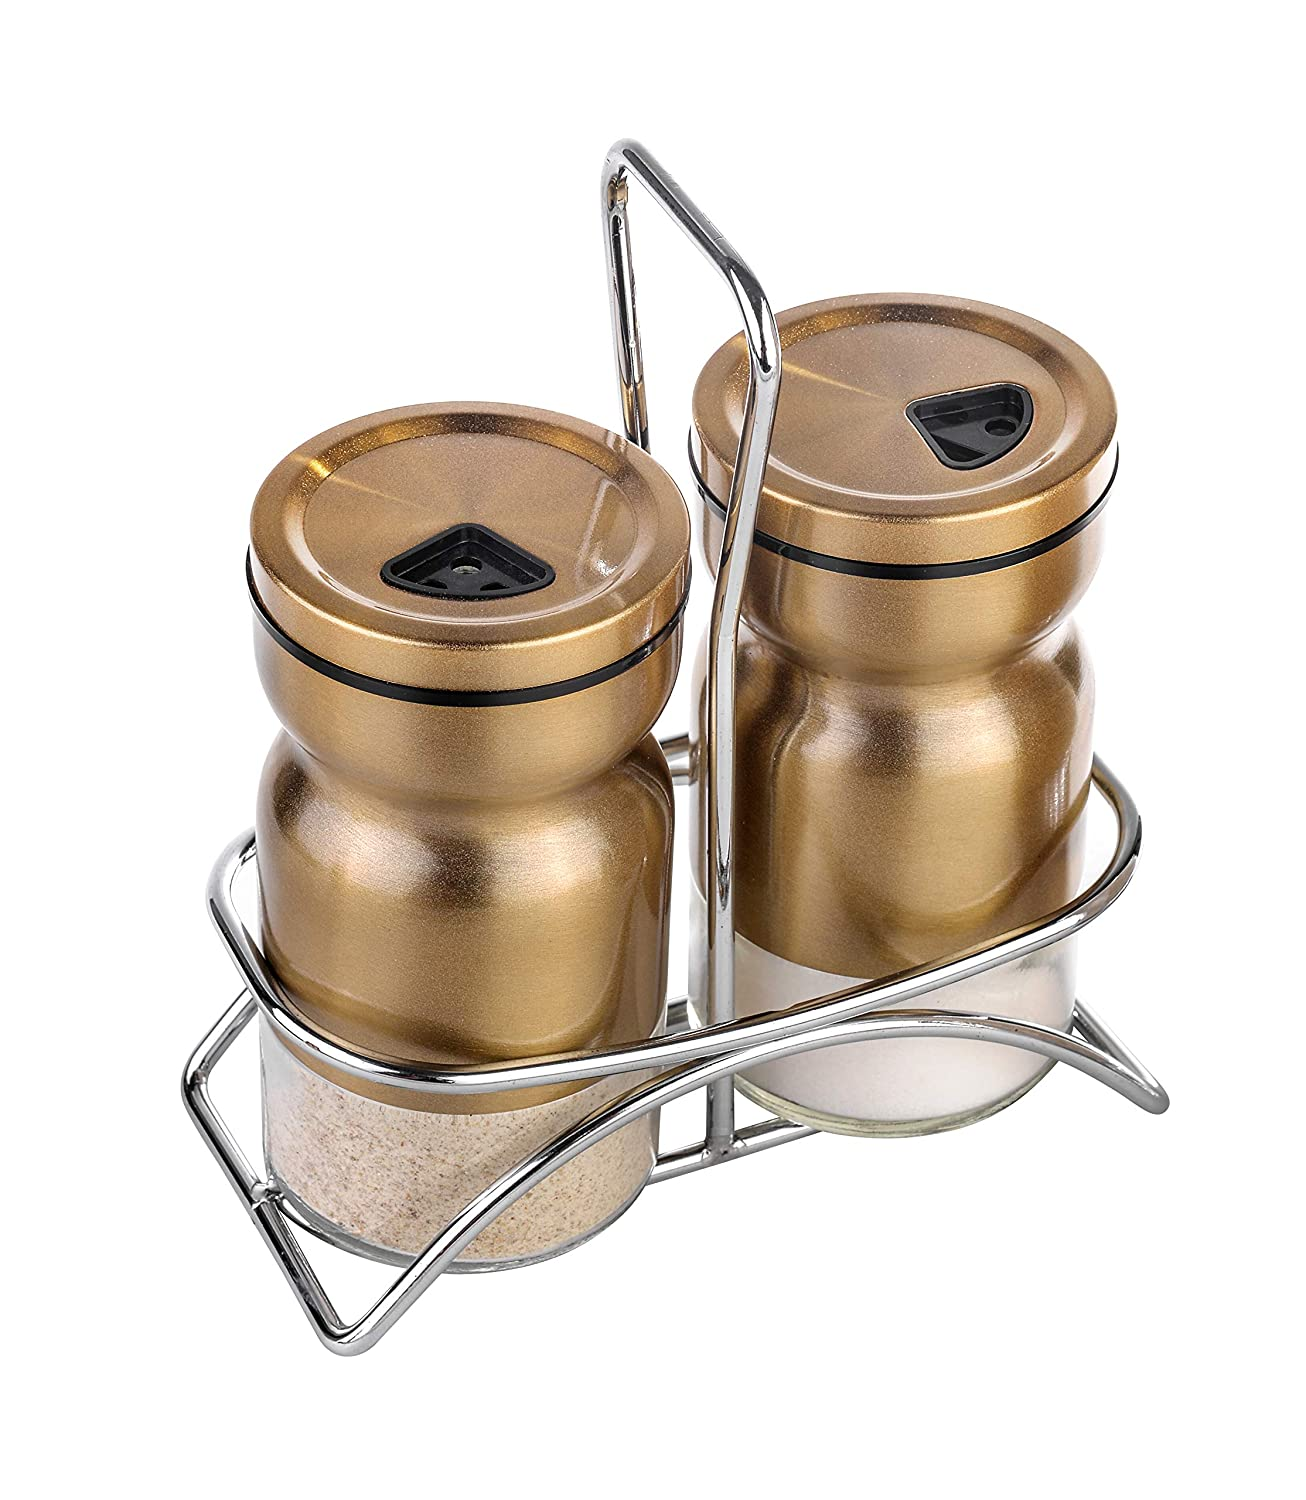 Salt and pepper shakers-Elegant salt and pepper shaker with lid-Adjustable pour hole Stainless Steel salt and pepper shaker